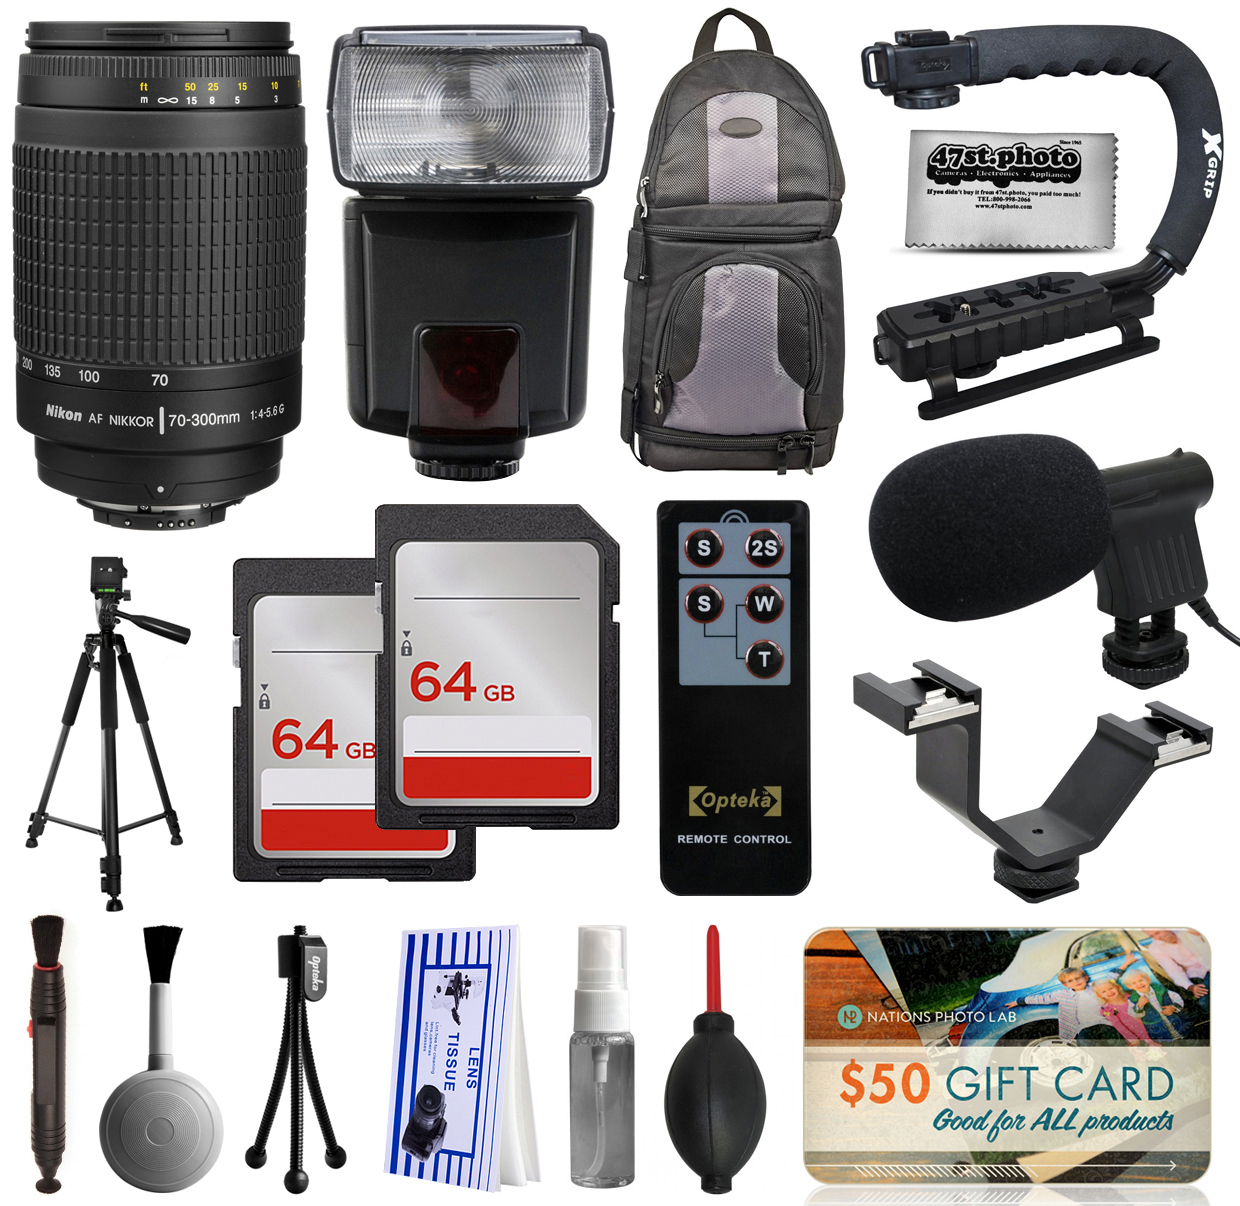 Must Have Accessories with Nikon 70-300mm Manual Lens 1928 + Flash + Backpack + 128GB Memory + Microphone for Nikon DF D7200 D7100 D7000 D5500 D5300 D5200 D5100 D5000 D3300 D3200 D3100 D3000 D300S D90